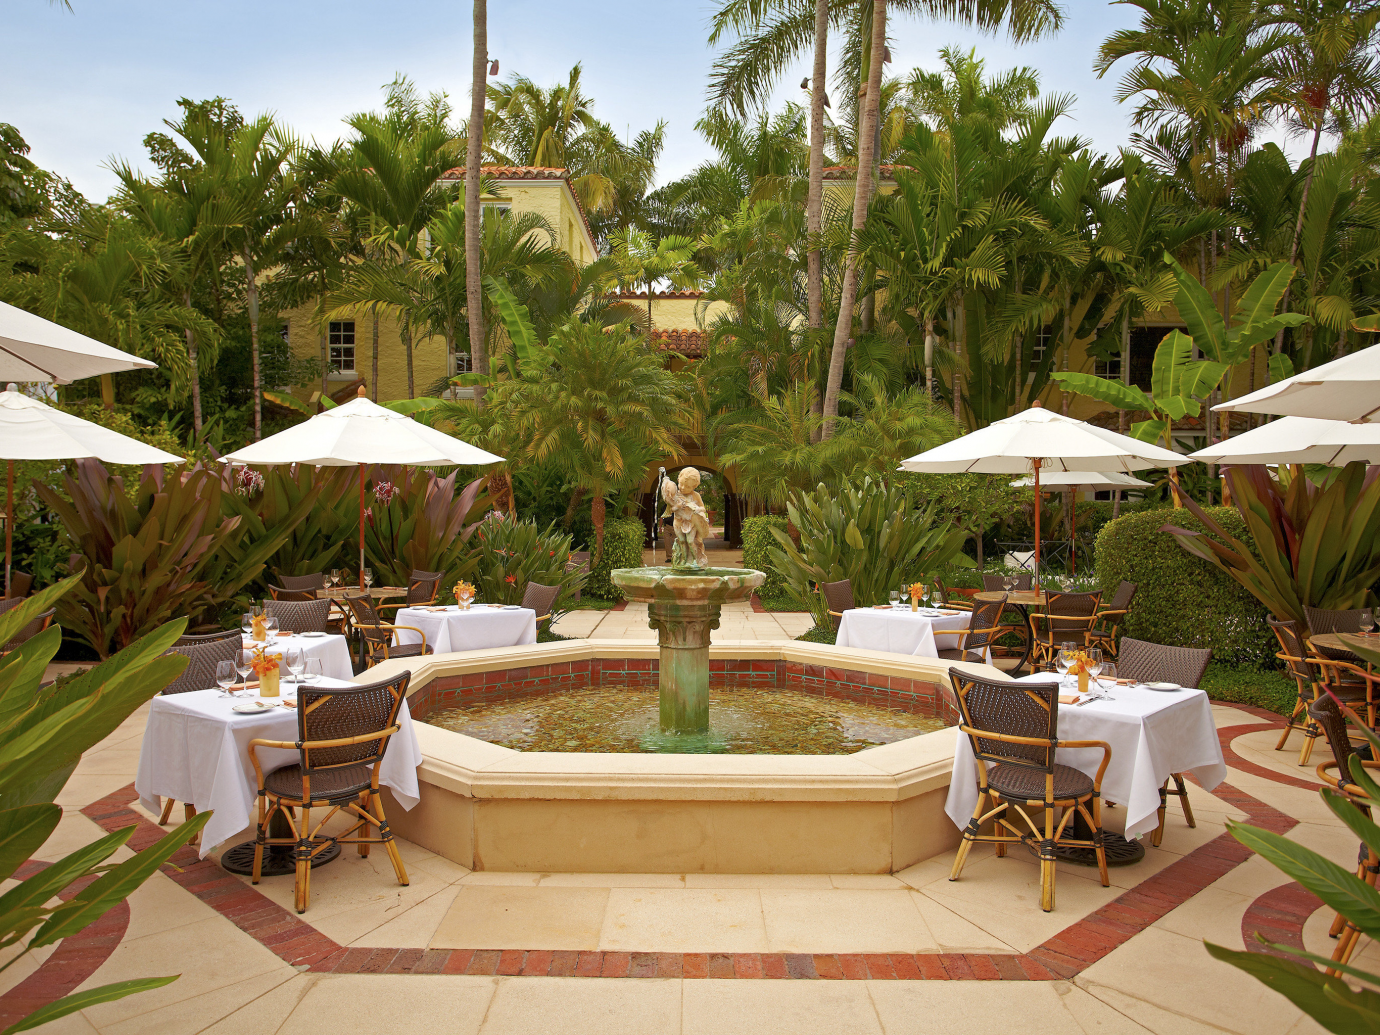 Courtyard with stone cherub holding fish spewing water into a center fountain including set tables surrounding at The Brazilian Court Hotel